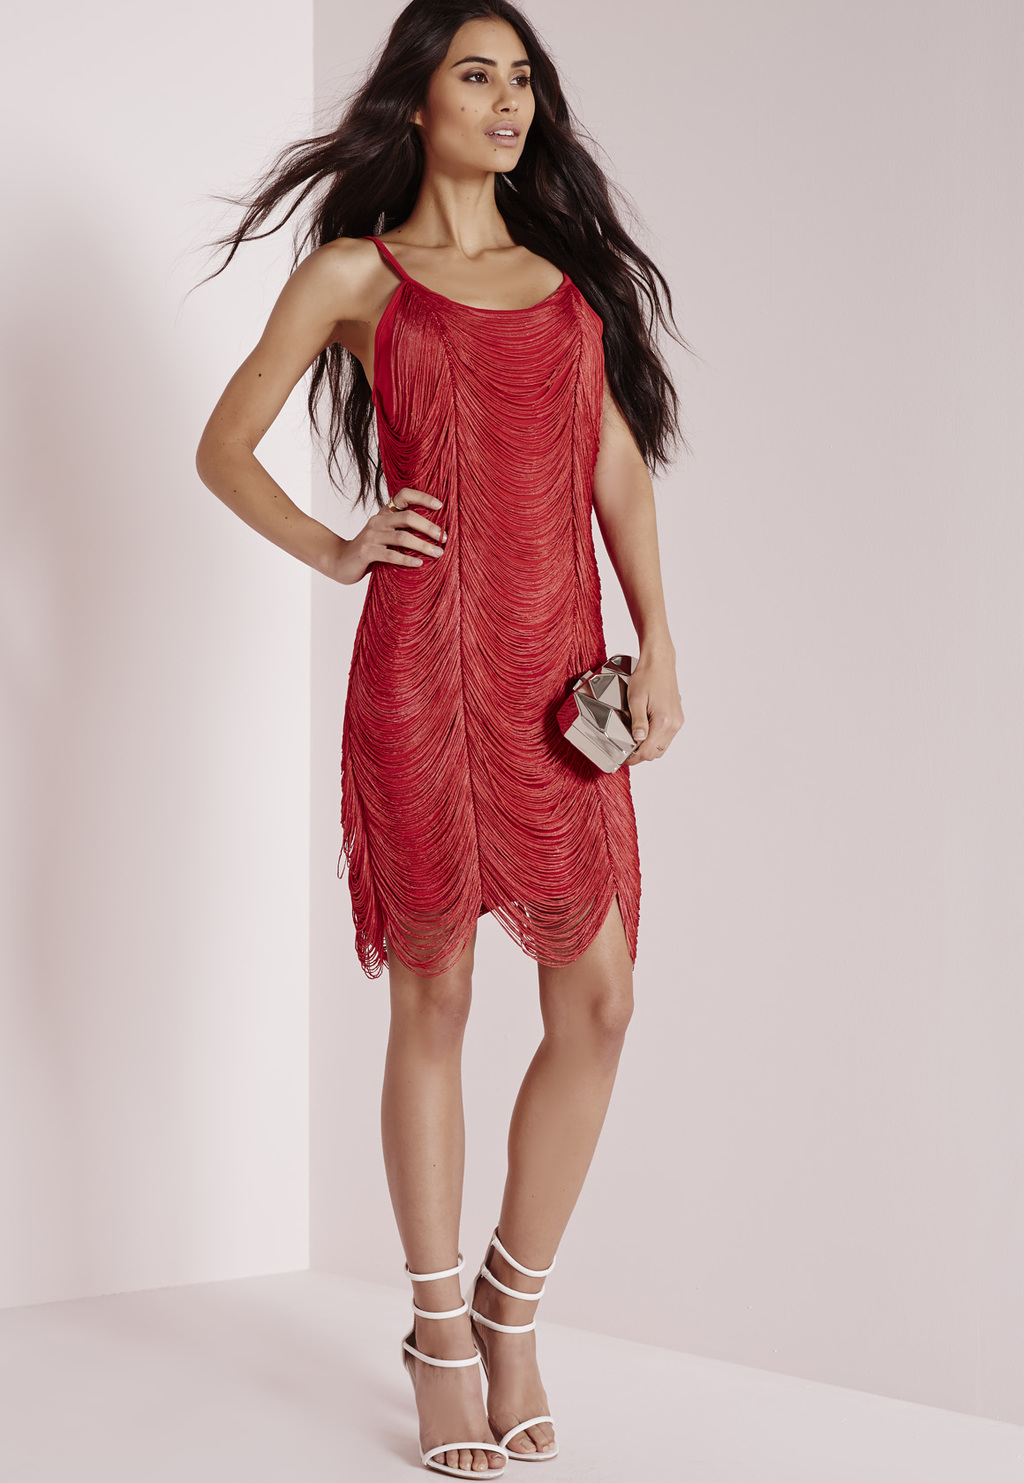 Fringe Drape Bodycon Dress Red, Red - sleeve style: standard vest straps/shoulder straps; fit: tight; pattern: plain; style: bodycon; predominant colour: true red; occasions: evening, occasion; length: just above the knee; neckline: scoop; fibres: polyester/polyamide - stretch; sleeve length: sleeveless; pattern type: fabric; texture group: other - light to midweight; embellishment: fringing; season: a/w 2015